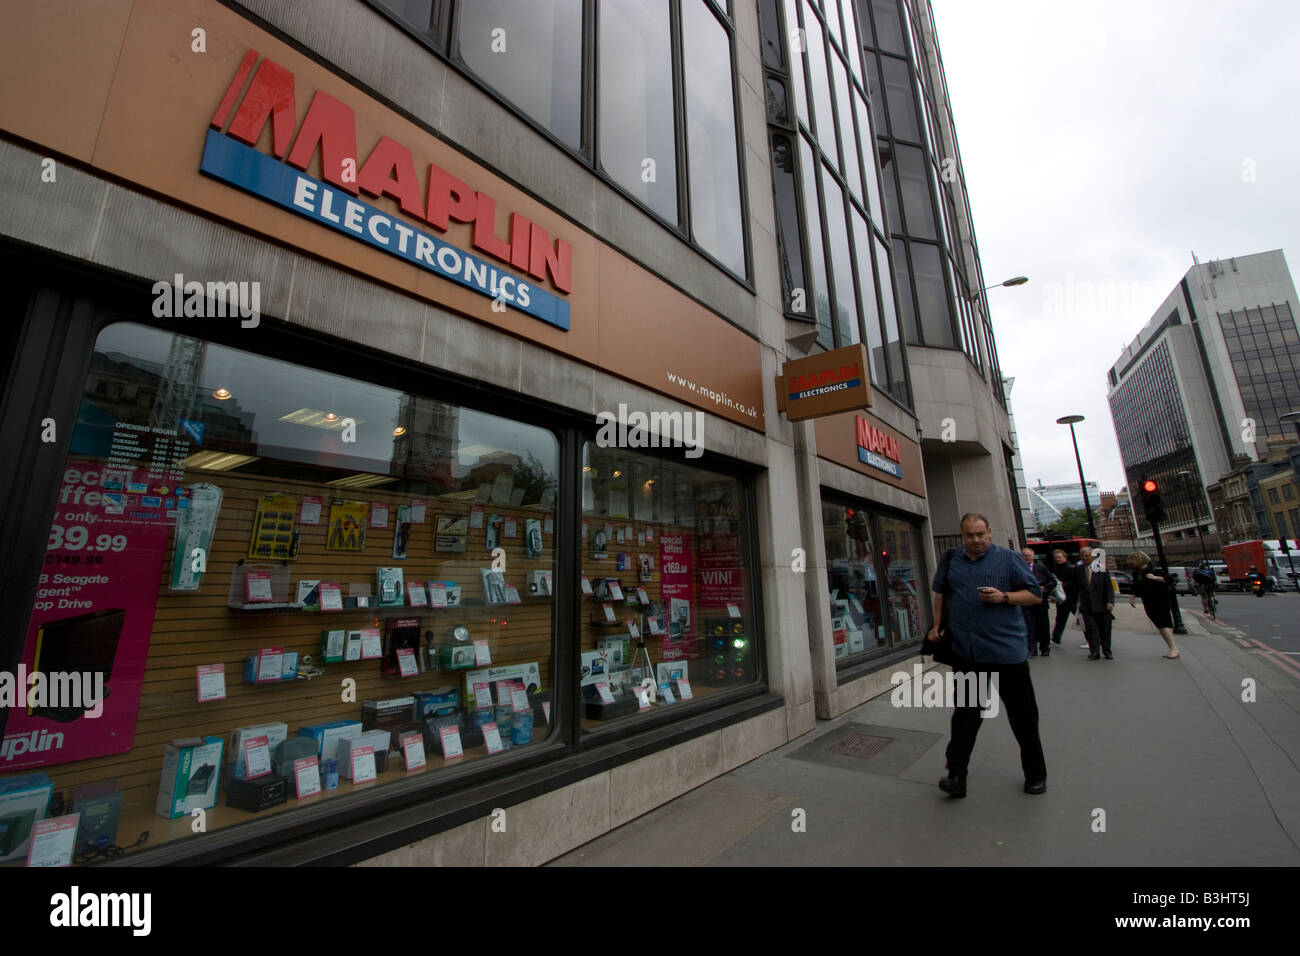 maplins electronics store central london - Stock Image